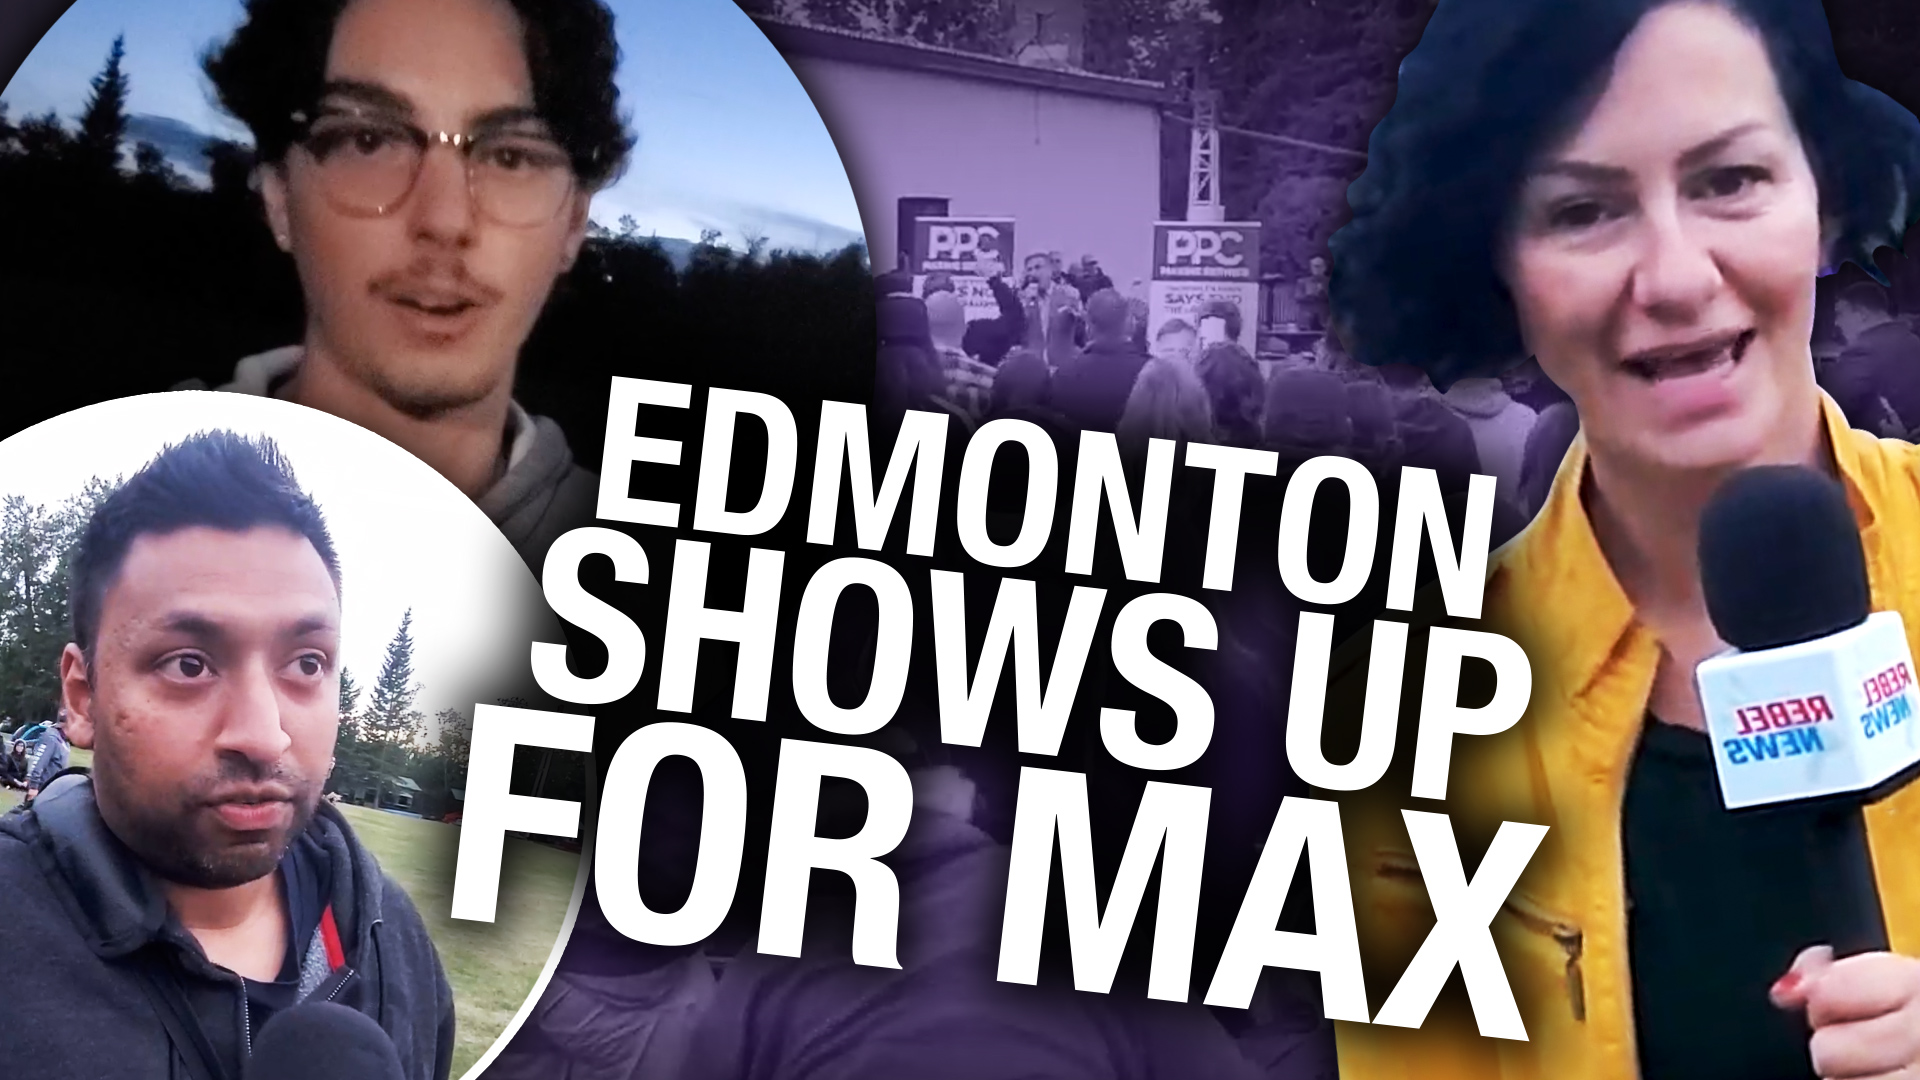 Maxime Bernier in Edmonton: Supporters Explain Why They're Voting PPC